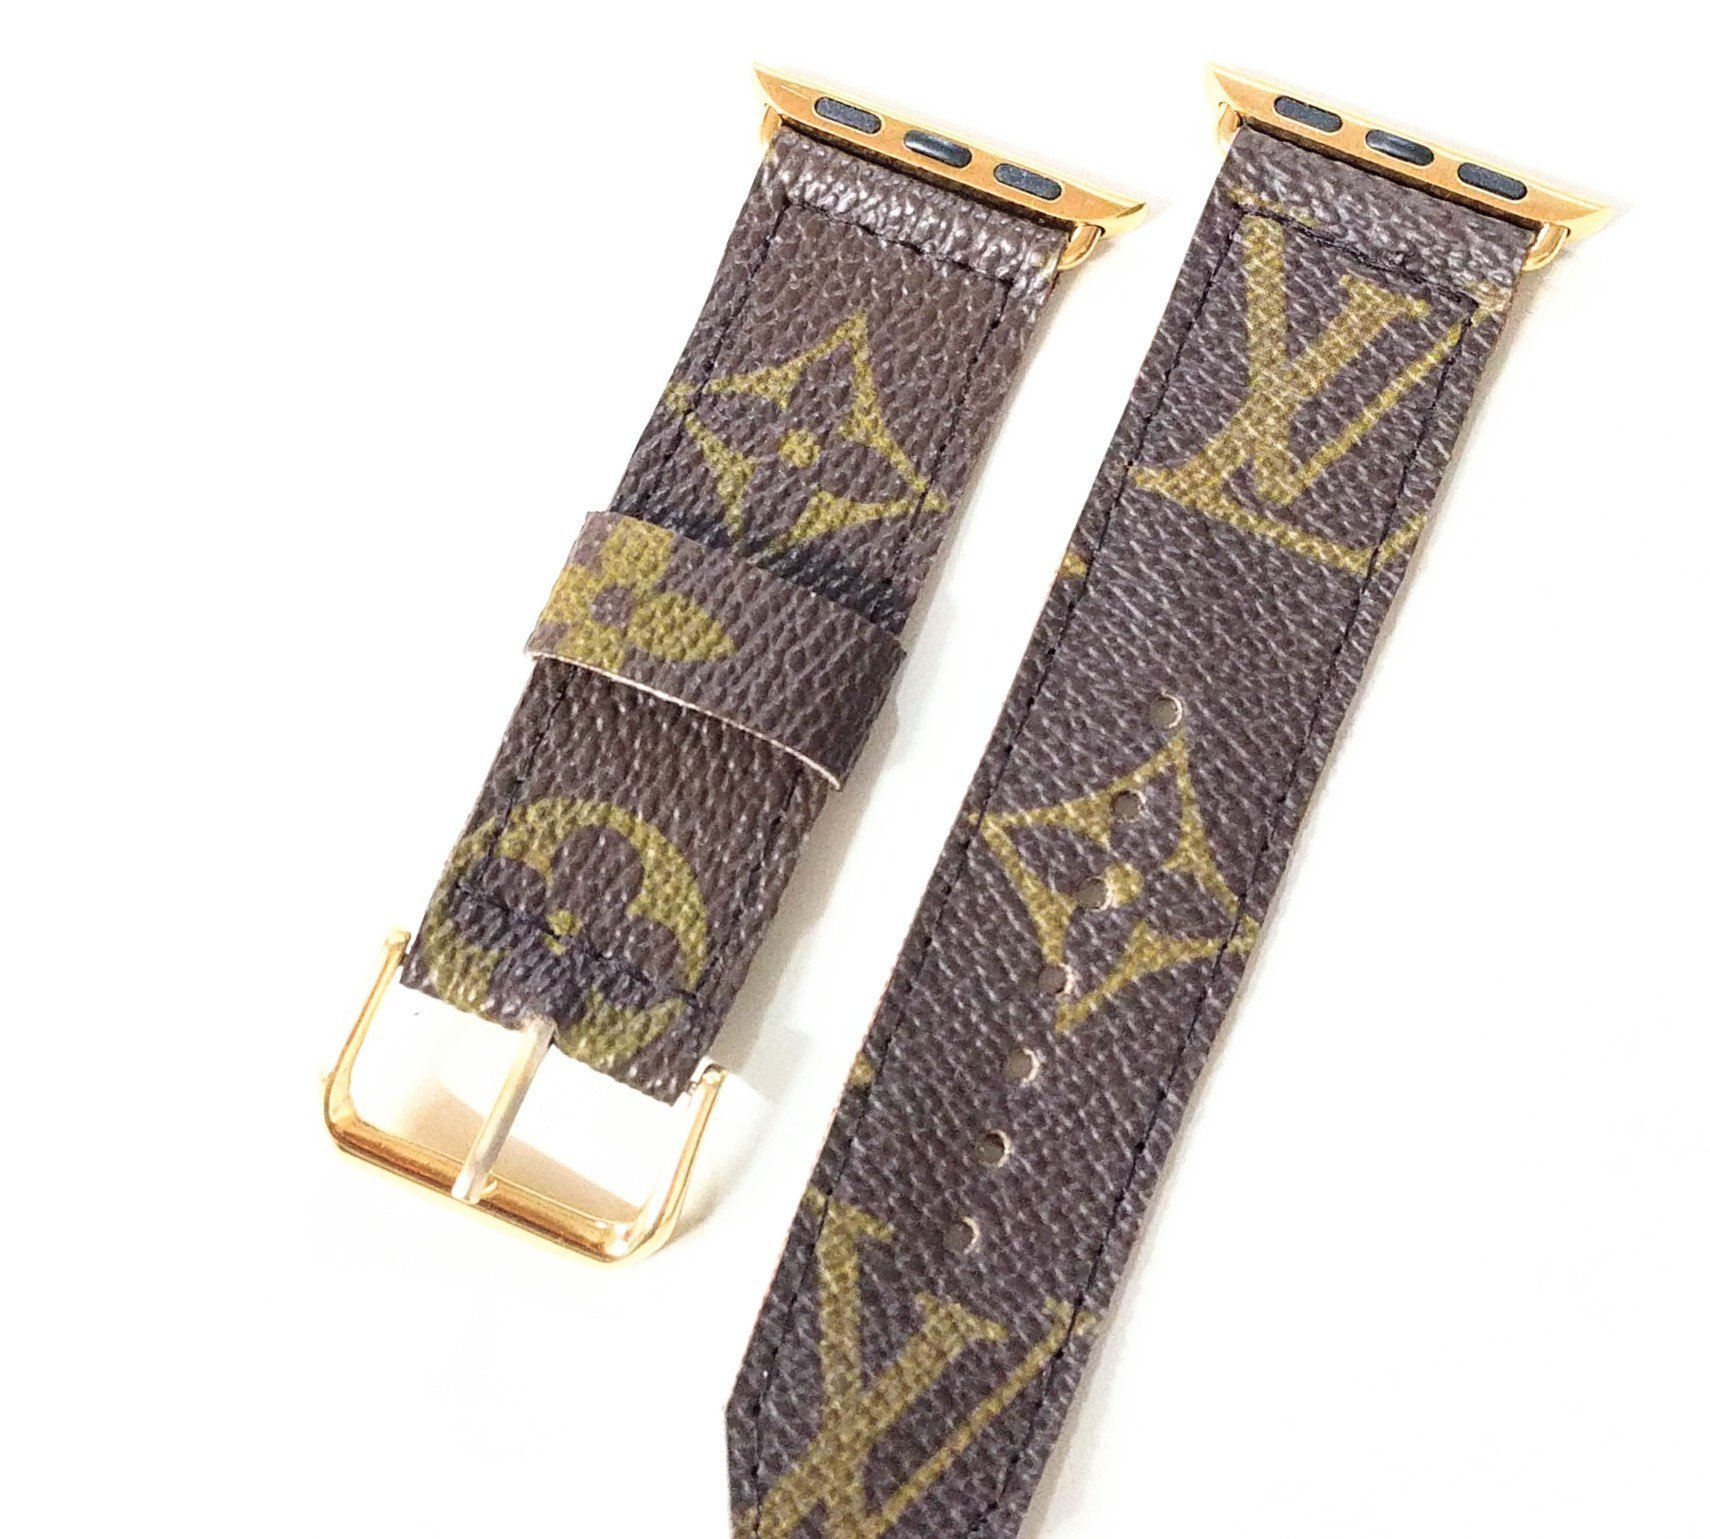 Handmade upcycled and repurposed watch band to fit your apple watch from old LV bag's canvas size 38mm gold